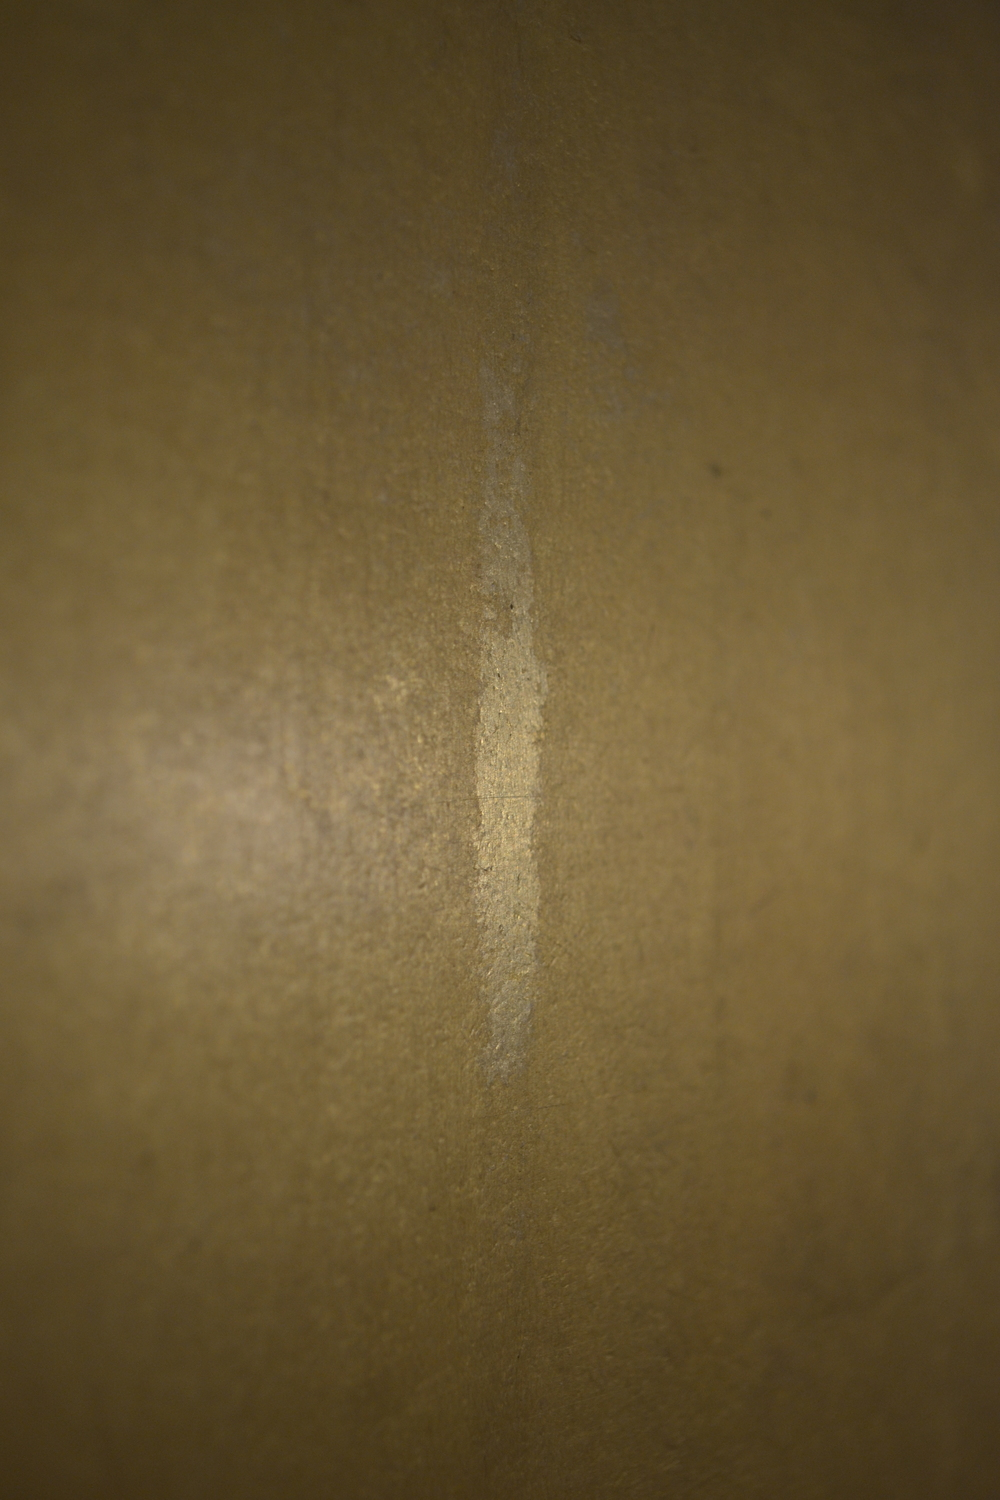 A surface drip probably from condensation along the skylights above the Cross.  The drip removed the surface dirt and natural resin coating, showing the difference between the coated and uncoated gilding.